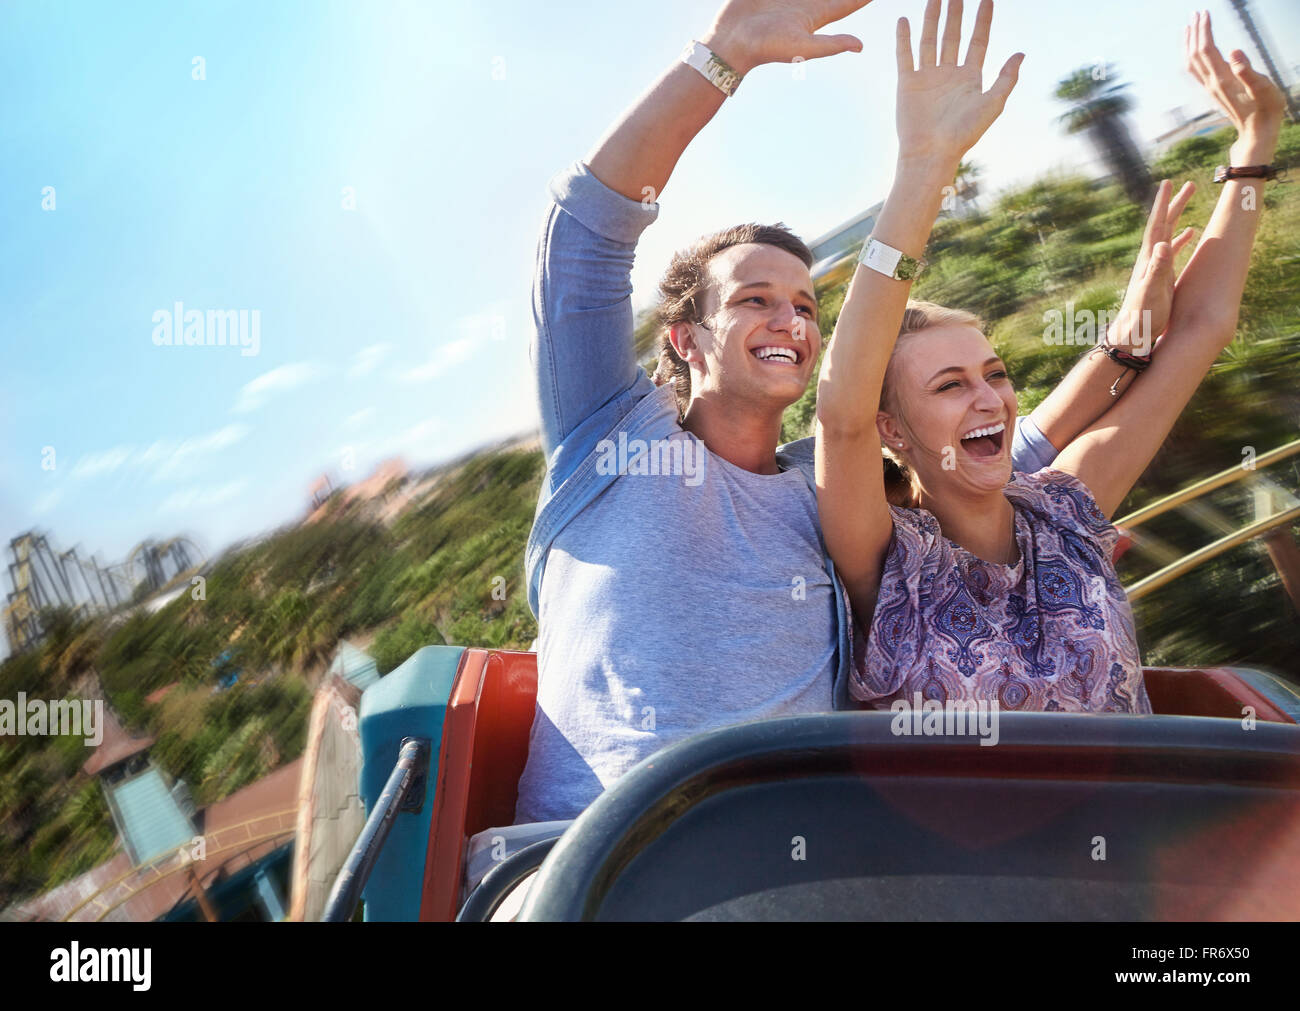 Exhilarated young couple riding amusement park ride - Stock Image